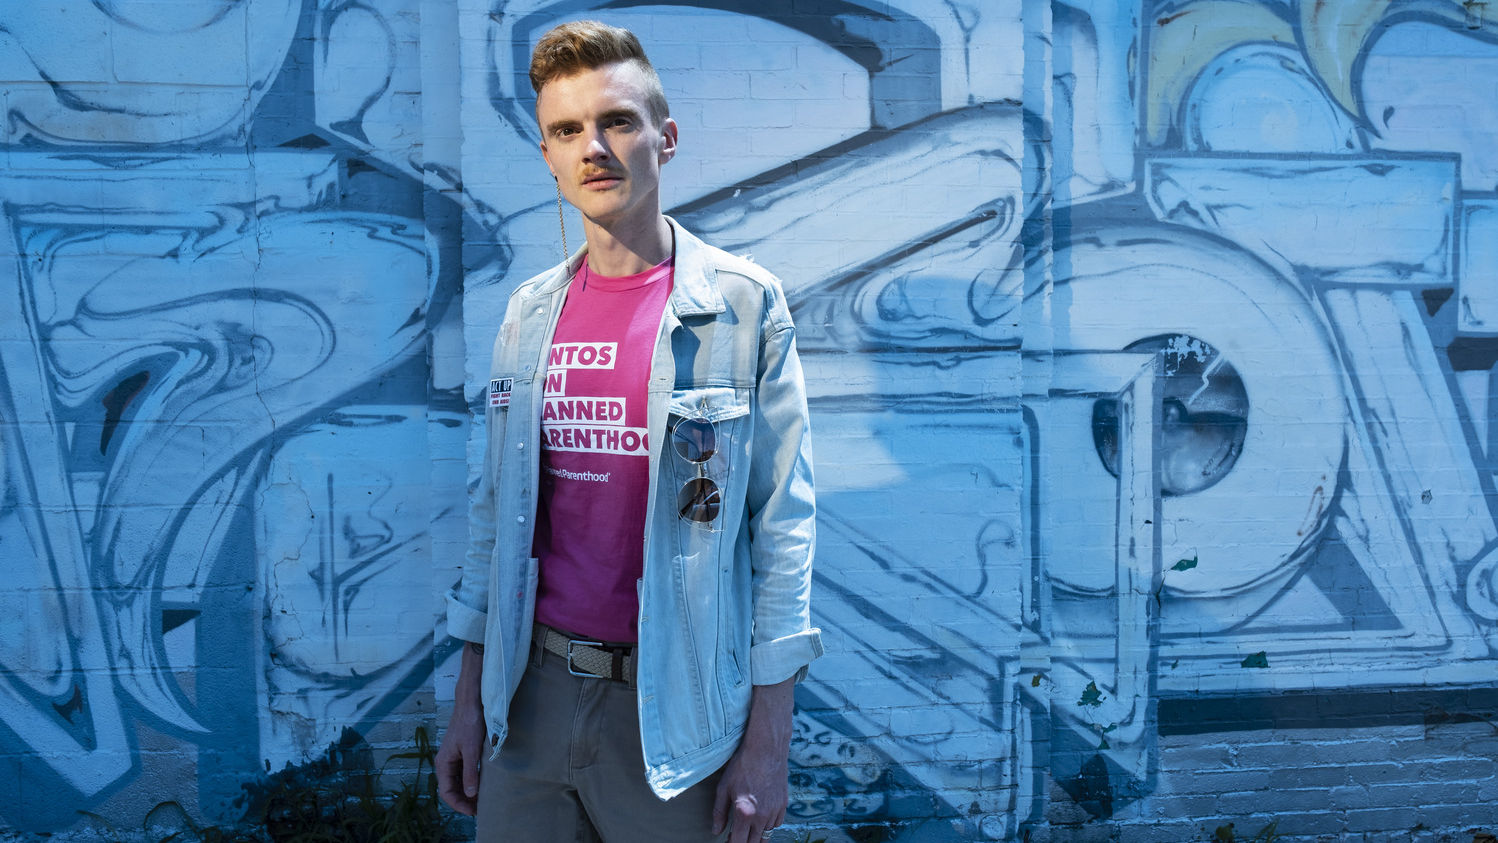 Andreas Copes in front of a blue background, wearing a Planned Parenthood shirt.